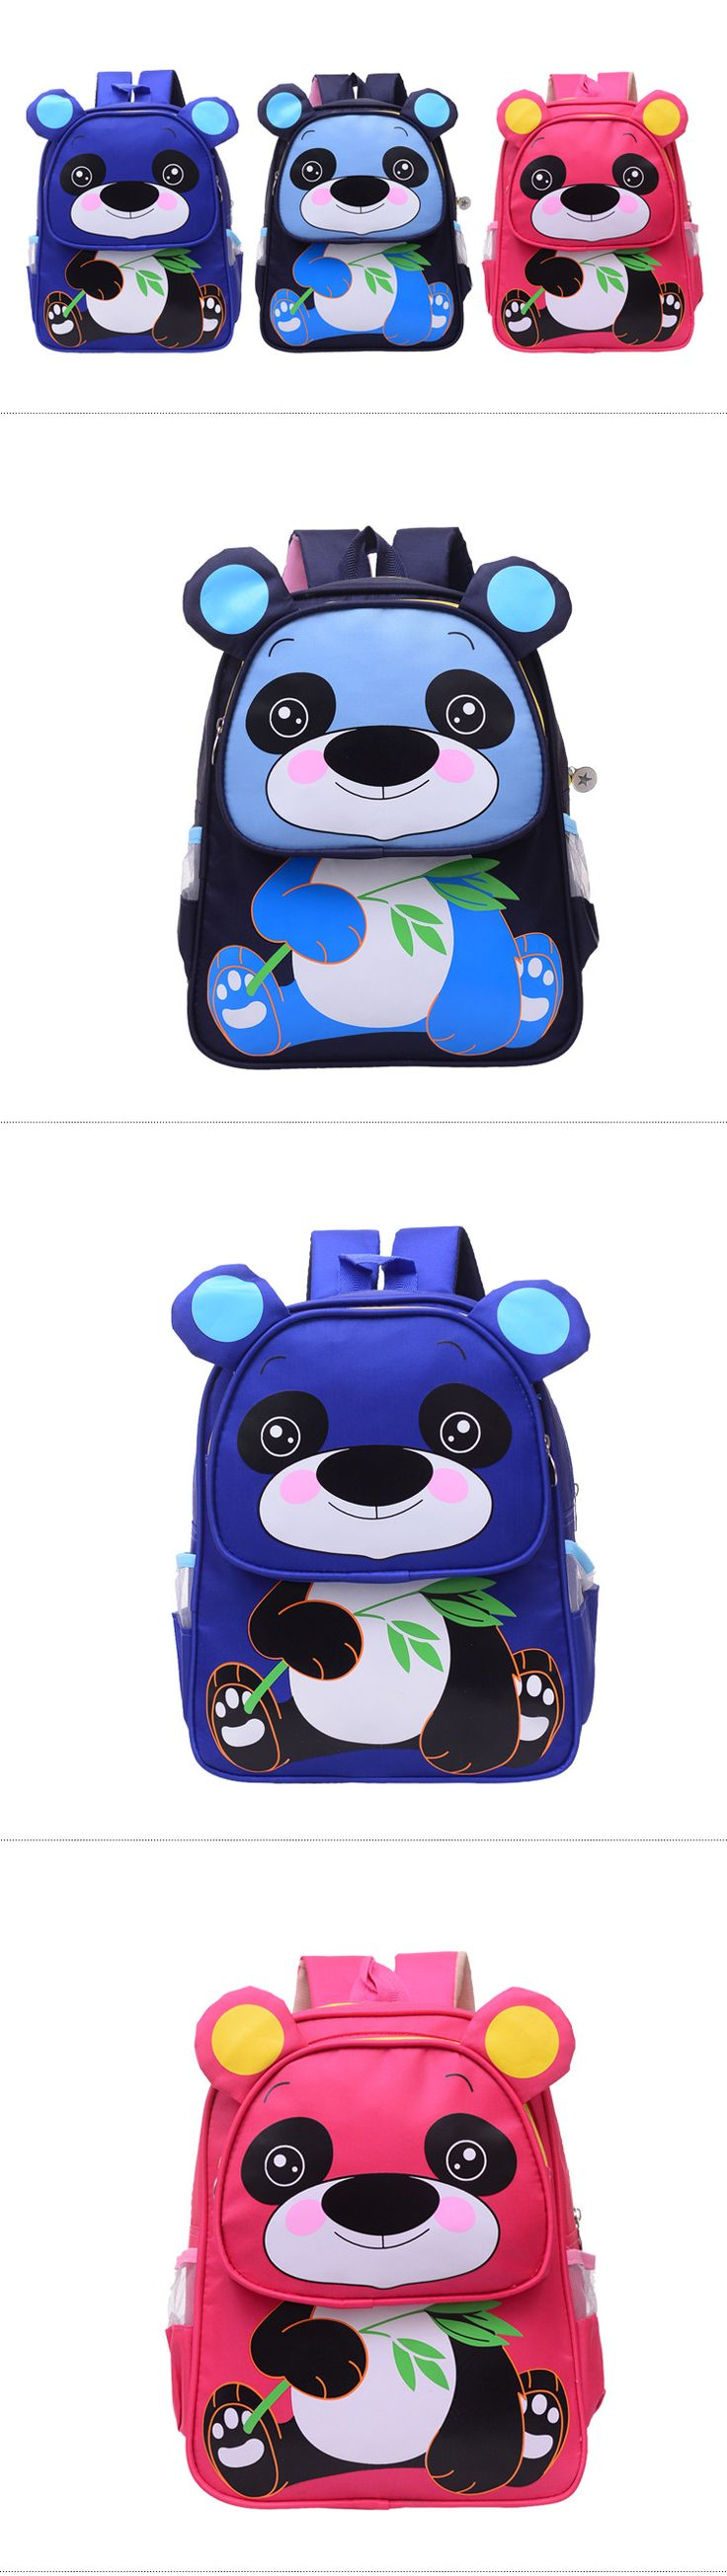 Cute Panda School bags Kids Baby's Bags Children Schoolbags Kindergarten Mini Backpacks Mochilas Escolares Infantis Gift , https://kitmybag.com/2017-cute-panda-school-bags-kids-babys-bags-children-schoolbags-kindergarten-mini-backpacks-mochilas-escolares-infantis-gift-2/ ,  Check more at https://kitmybag.com/2017-cute-panda-school-bags-kids-babys-bags-children-schoolbags-kindergarten-mini-backpacks-mochilas-escolares-infantis-gift-2/